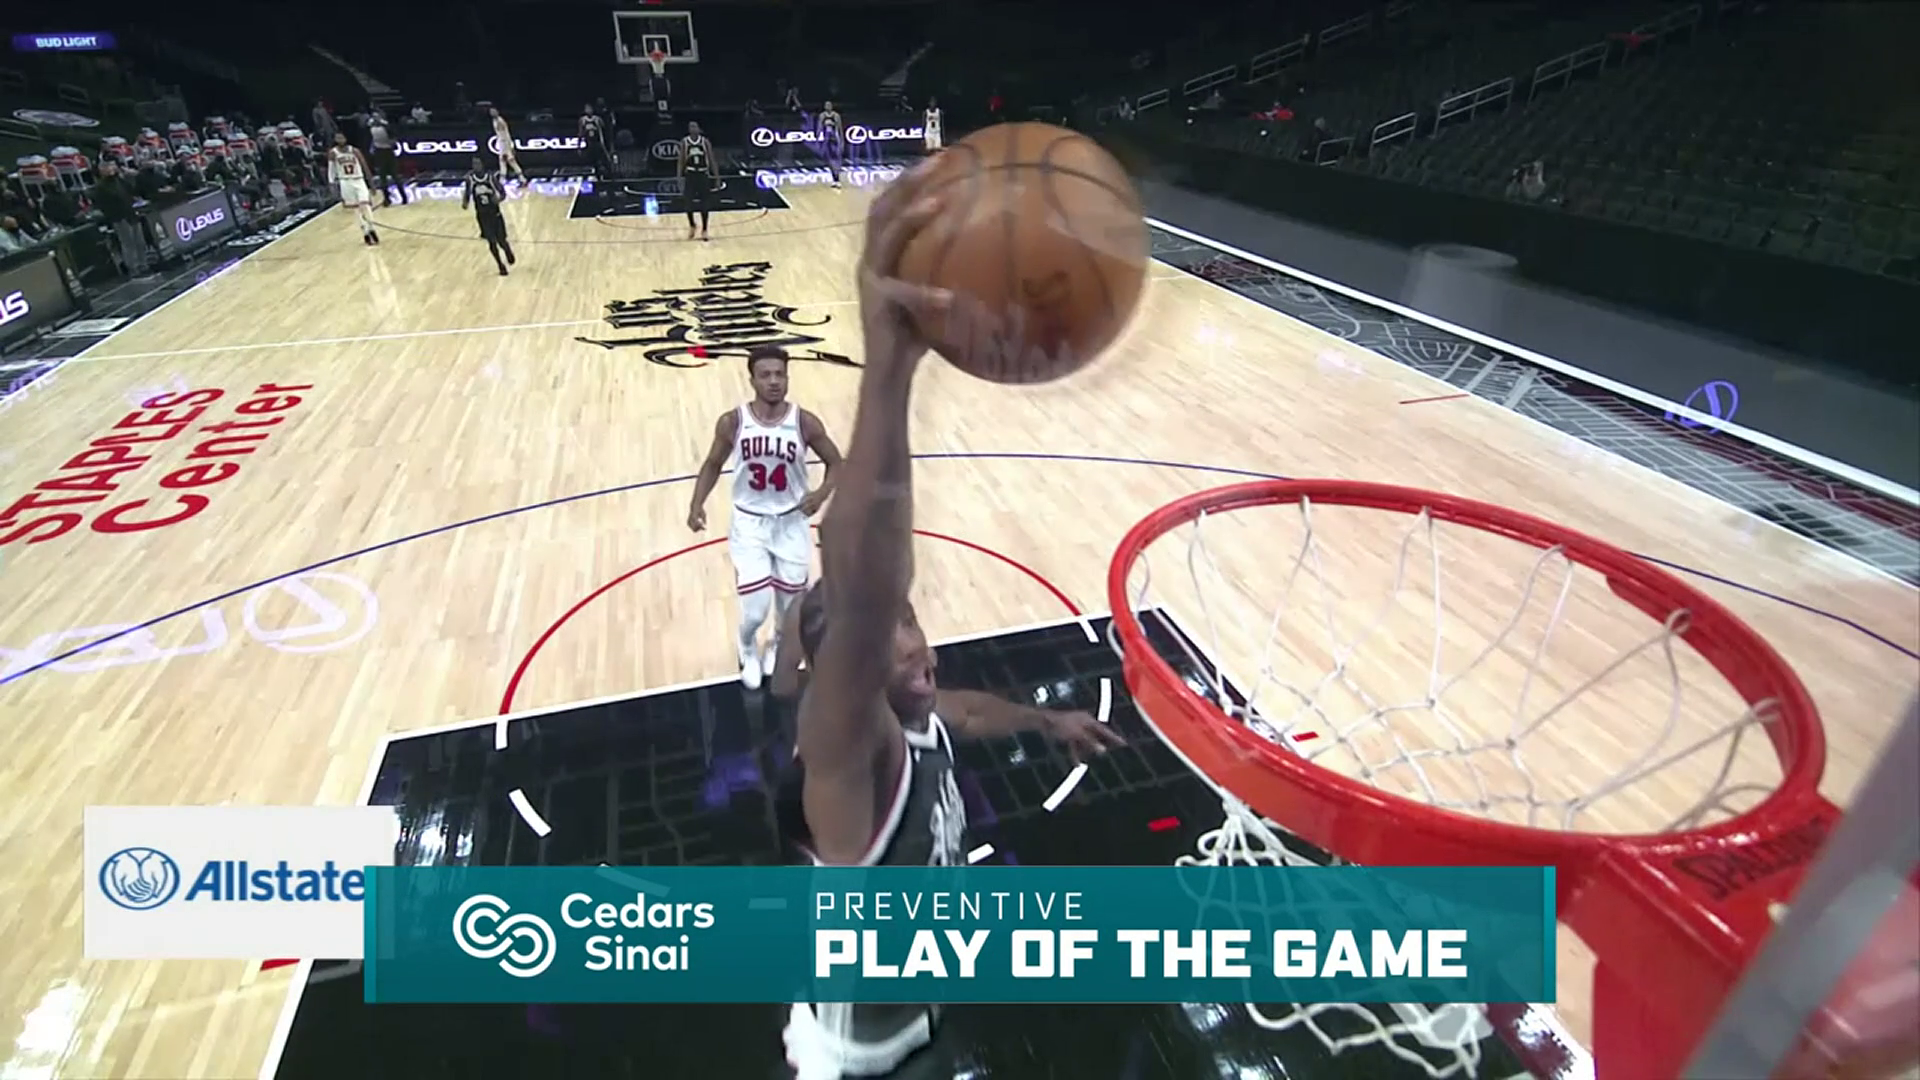 Cedars-Sinai Preventive Play of the Game | Clippers vs Bulls (1.10.21)